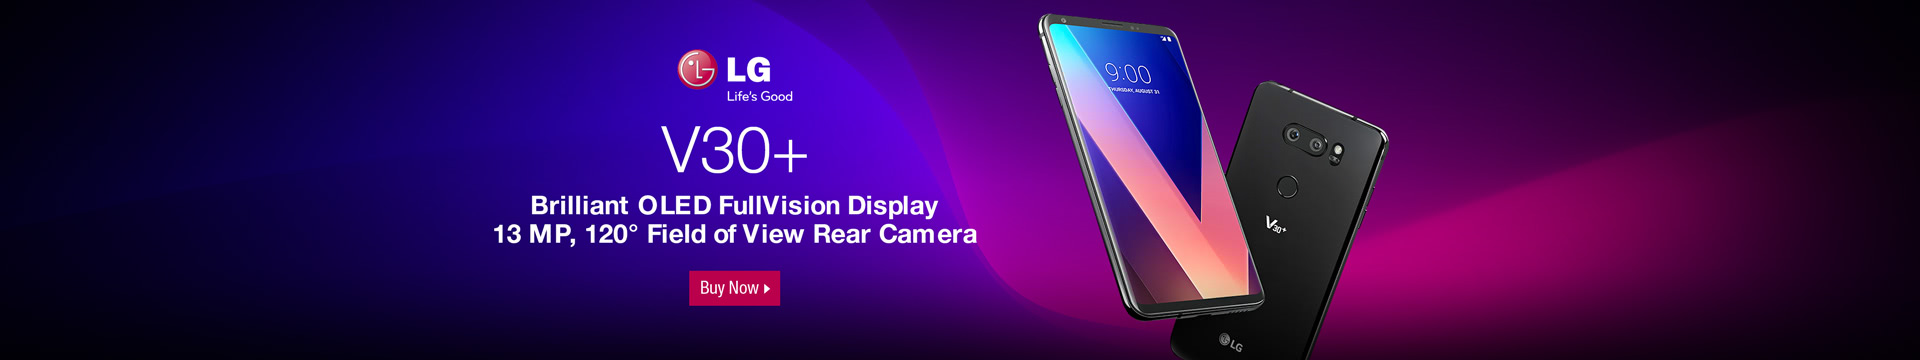 BRILIANT OLED FULLVISION DISPLAY